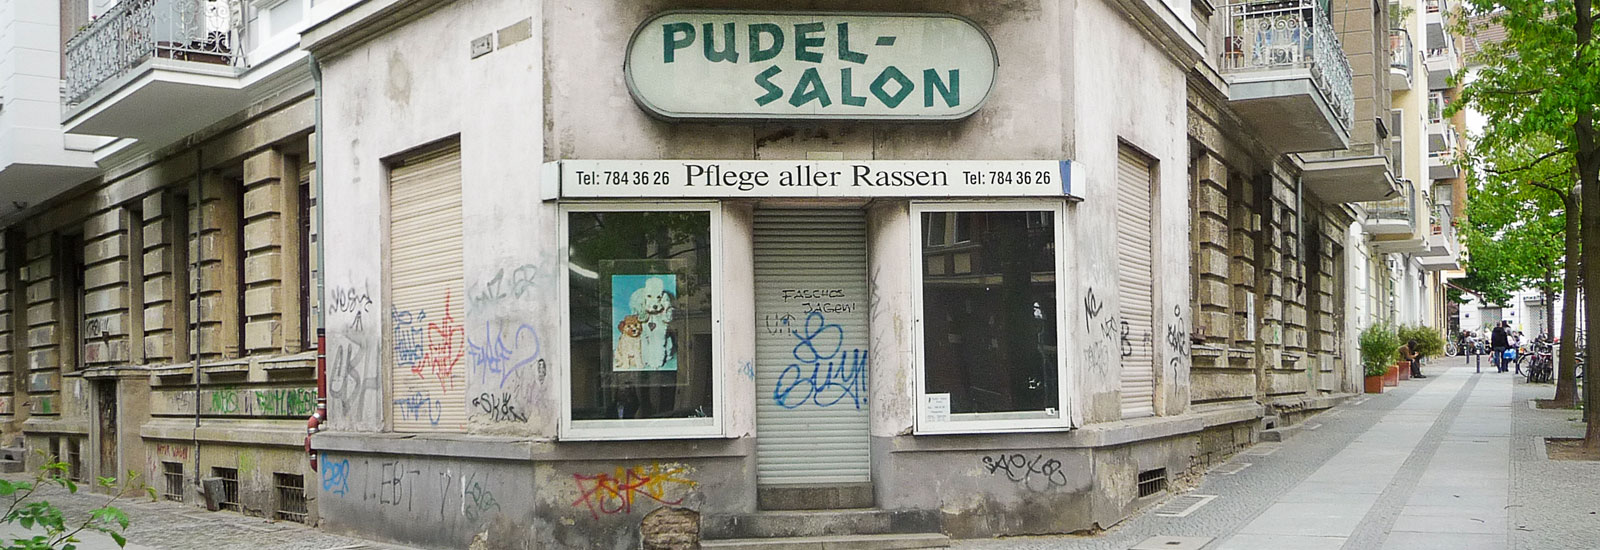 Pudel-Salon | Alexander Steffen »Vanishing Berlin – Revisited #2«